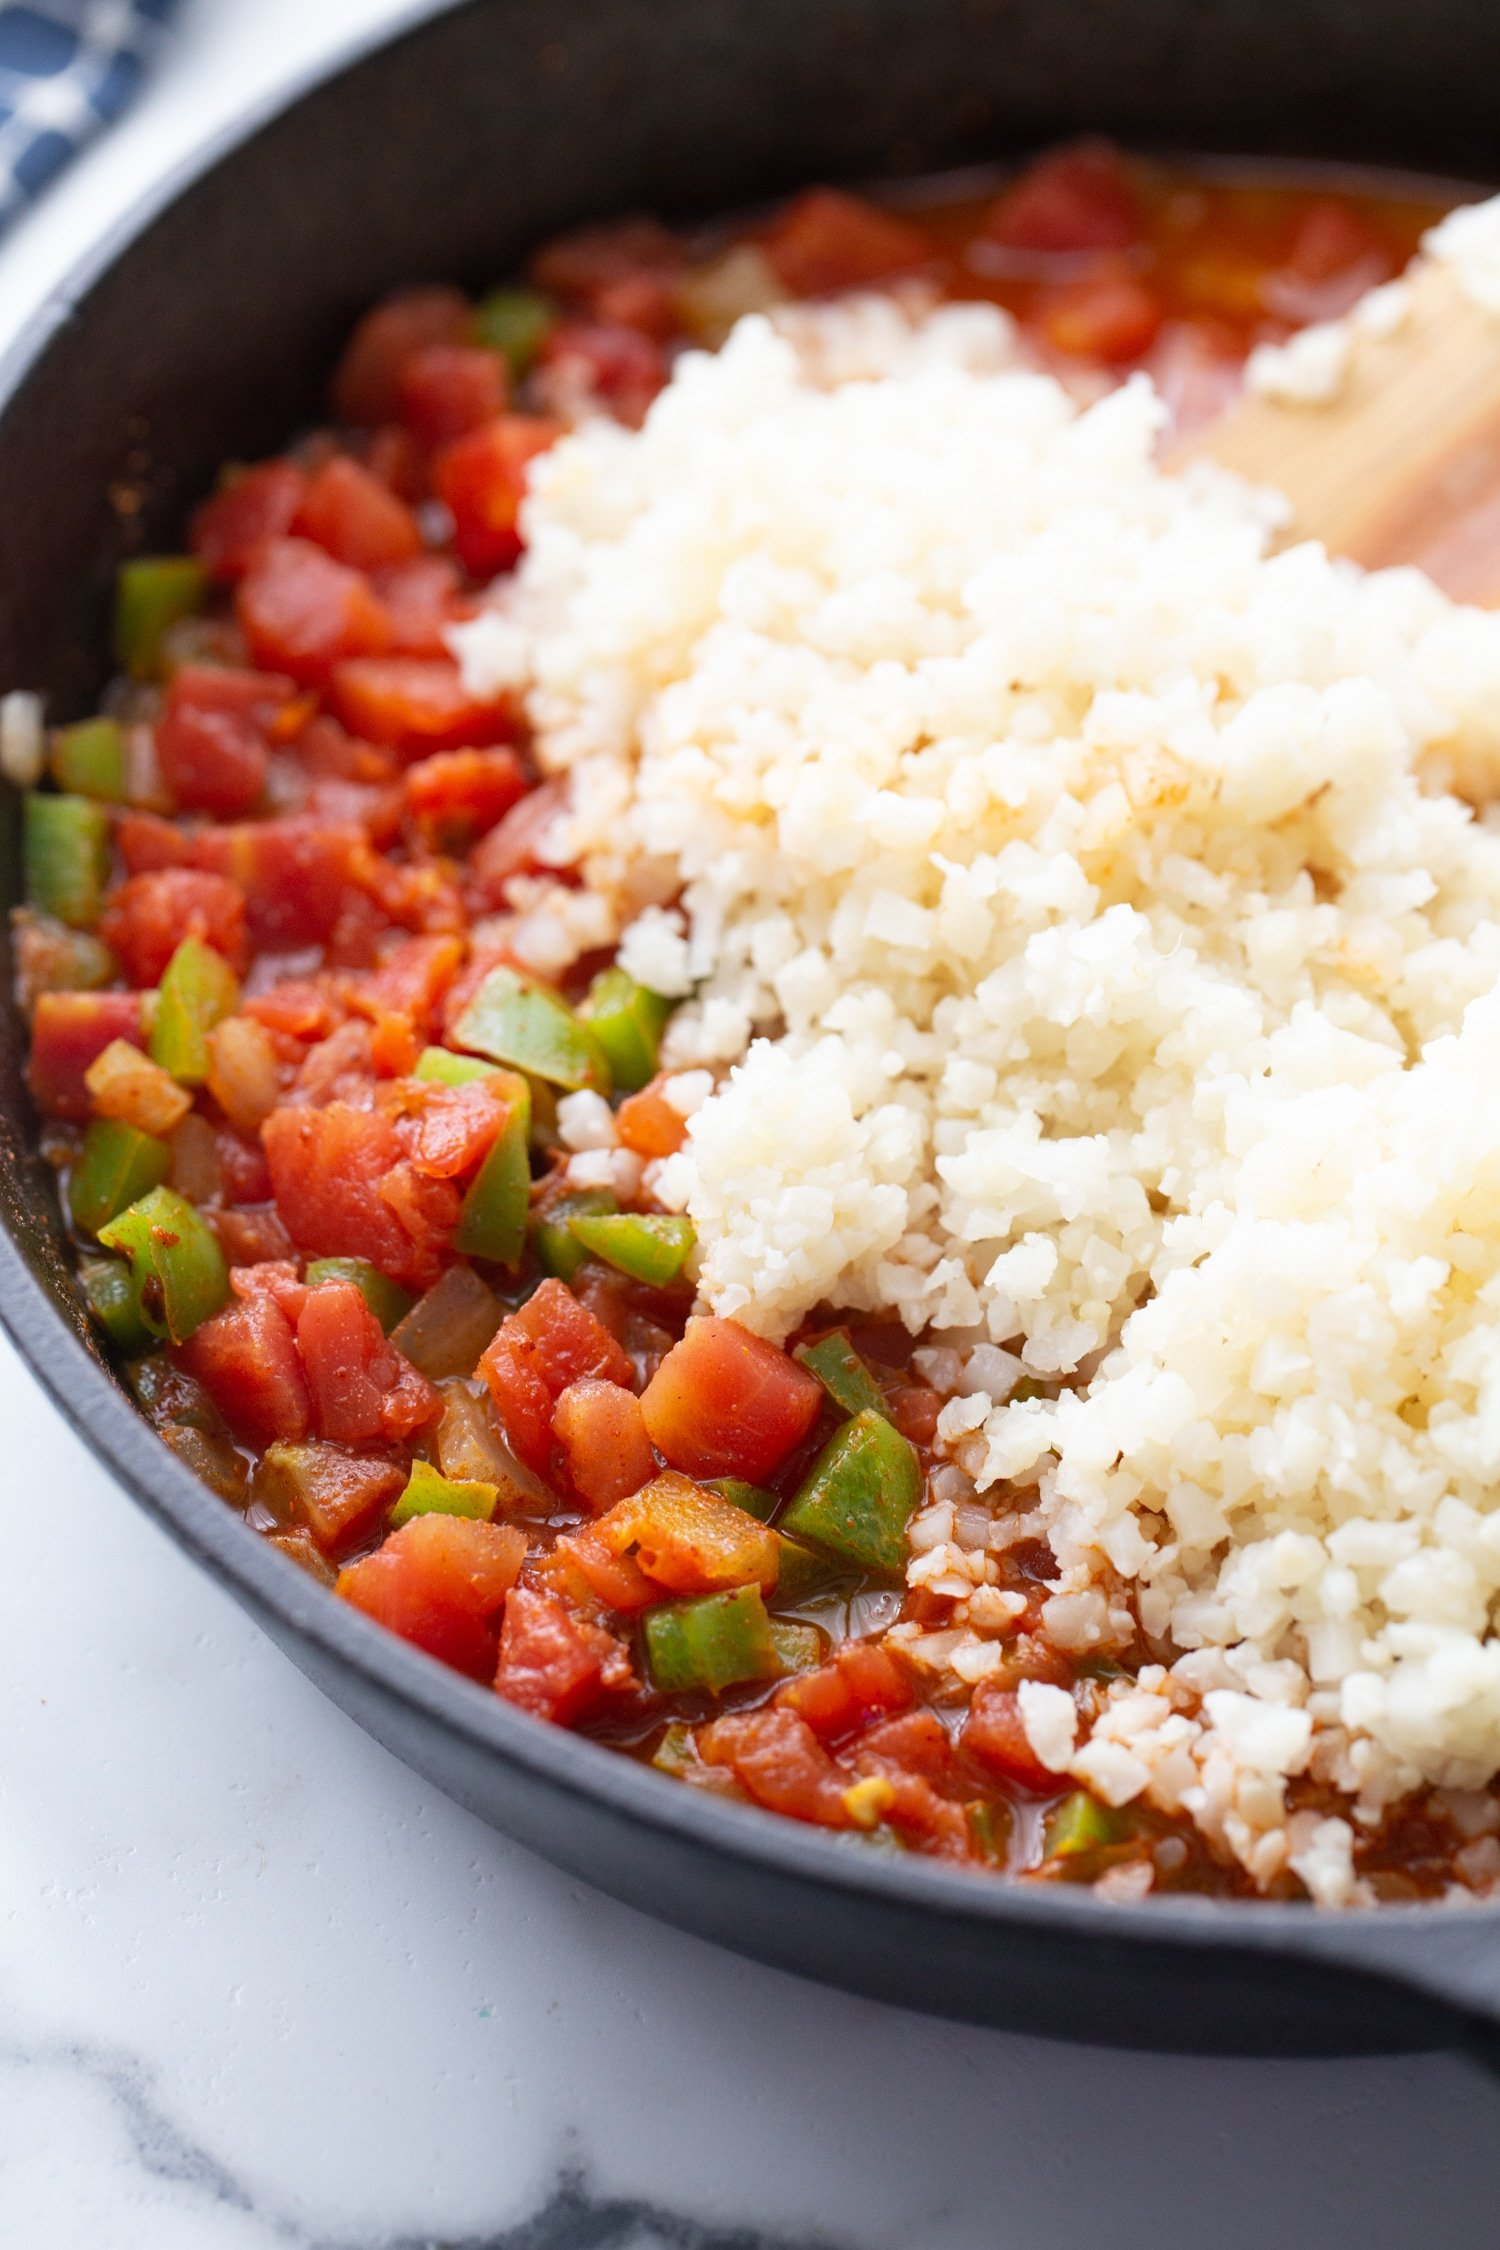 steamed riced cauliflower on top of the Rotel tomatoes in the skillet